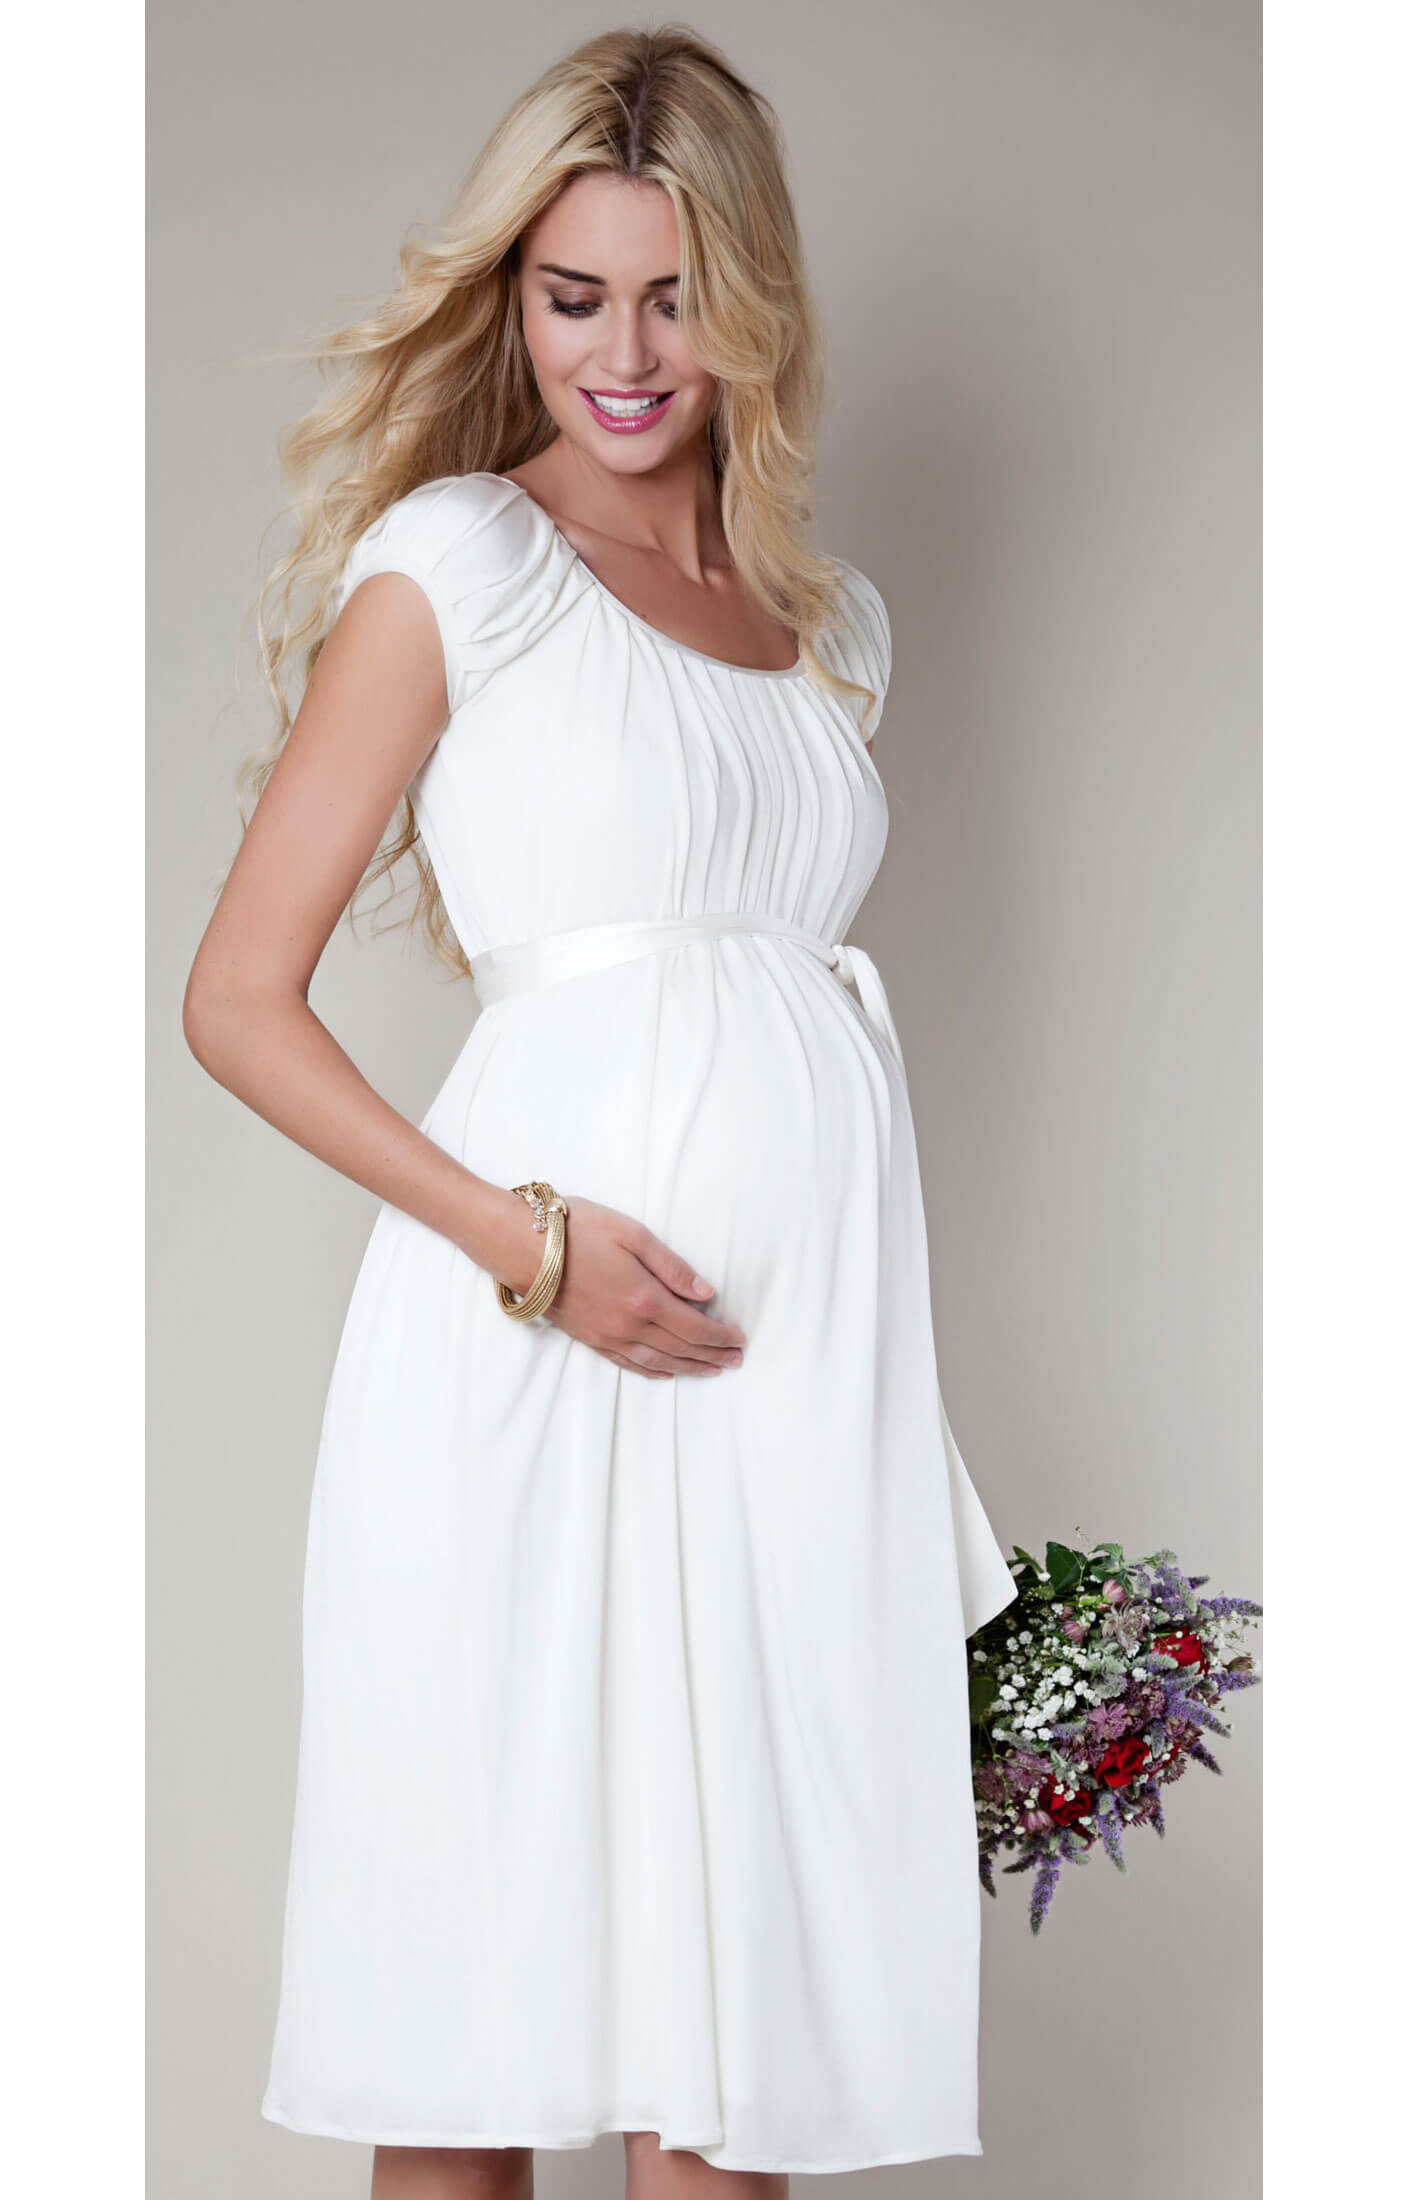 Free returns are only eligible on orders postmarked within 10 days of 0549sahibi.tk Latest Summer Trends · One Stop Maternity Shop · Free Shipping U.S. Orders · 10% Off First OrderTypes: Active, Sleep, Nursing, Baby Shower.